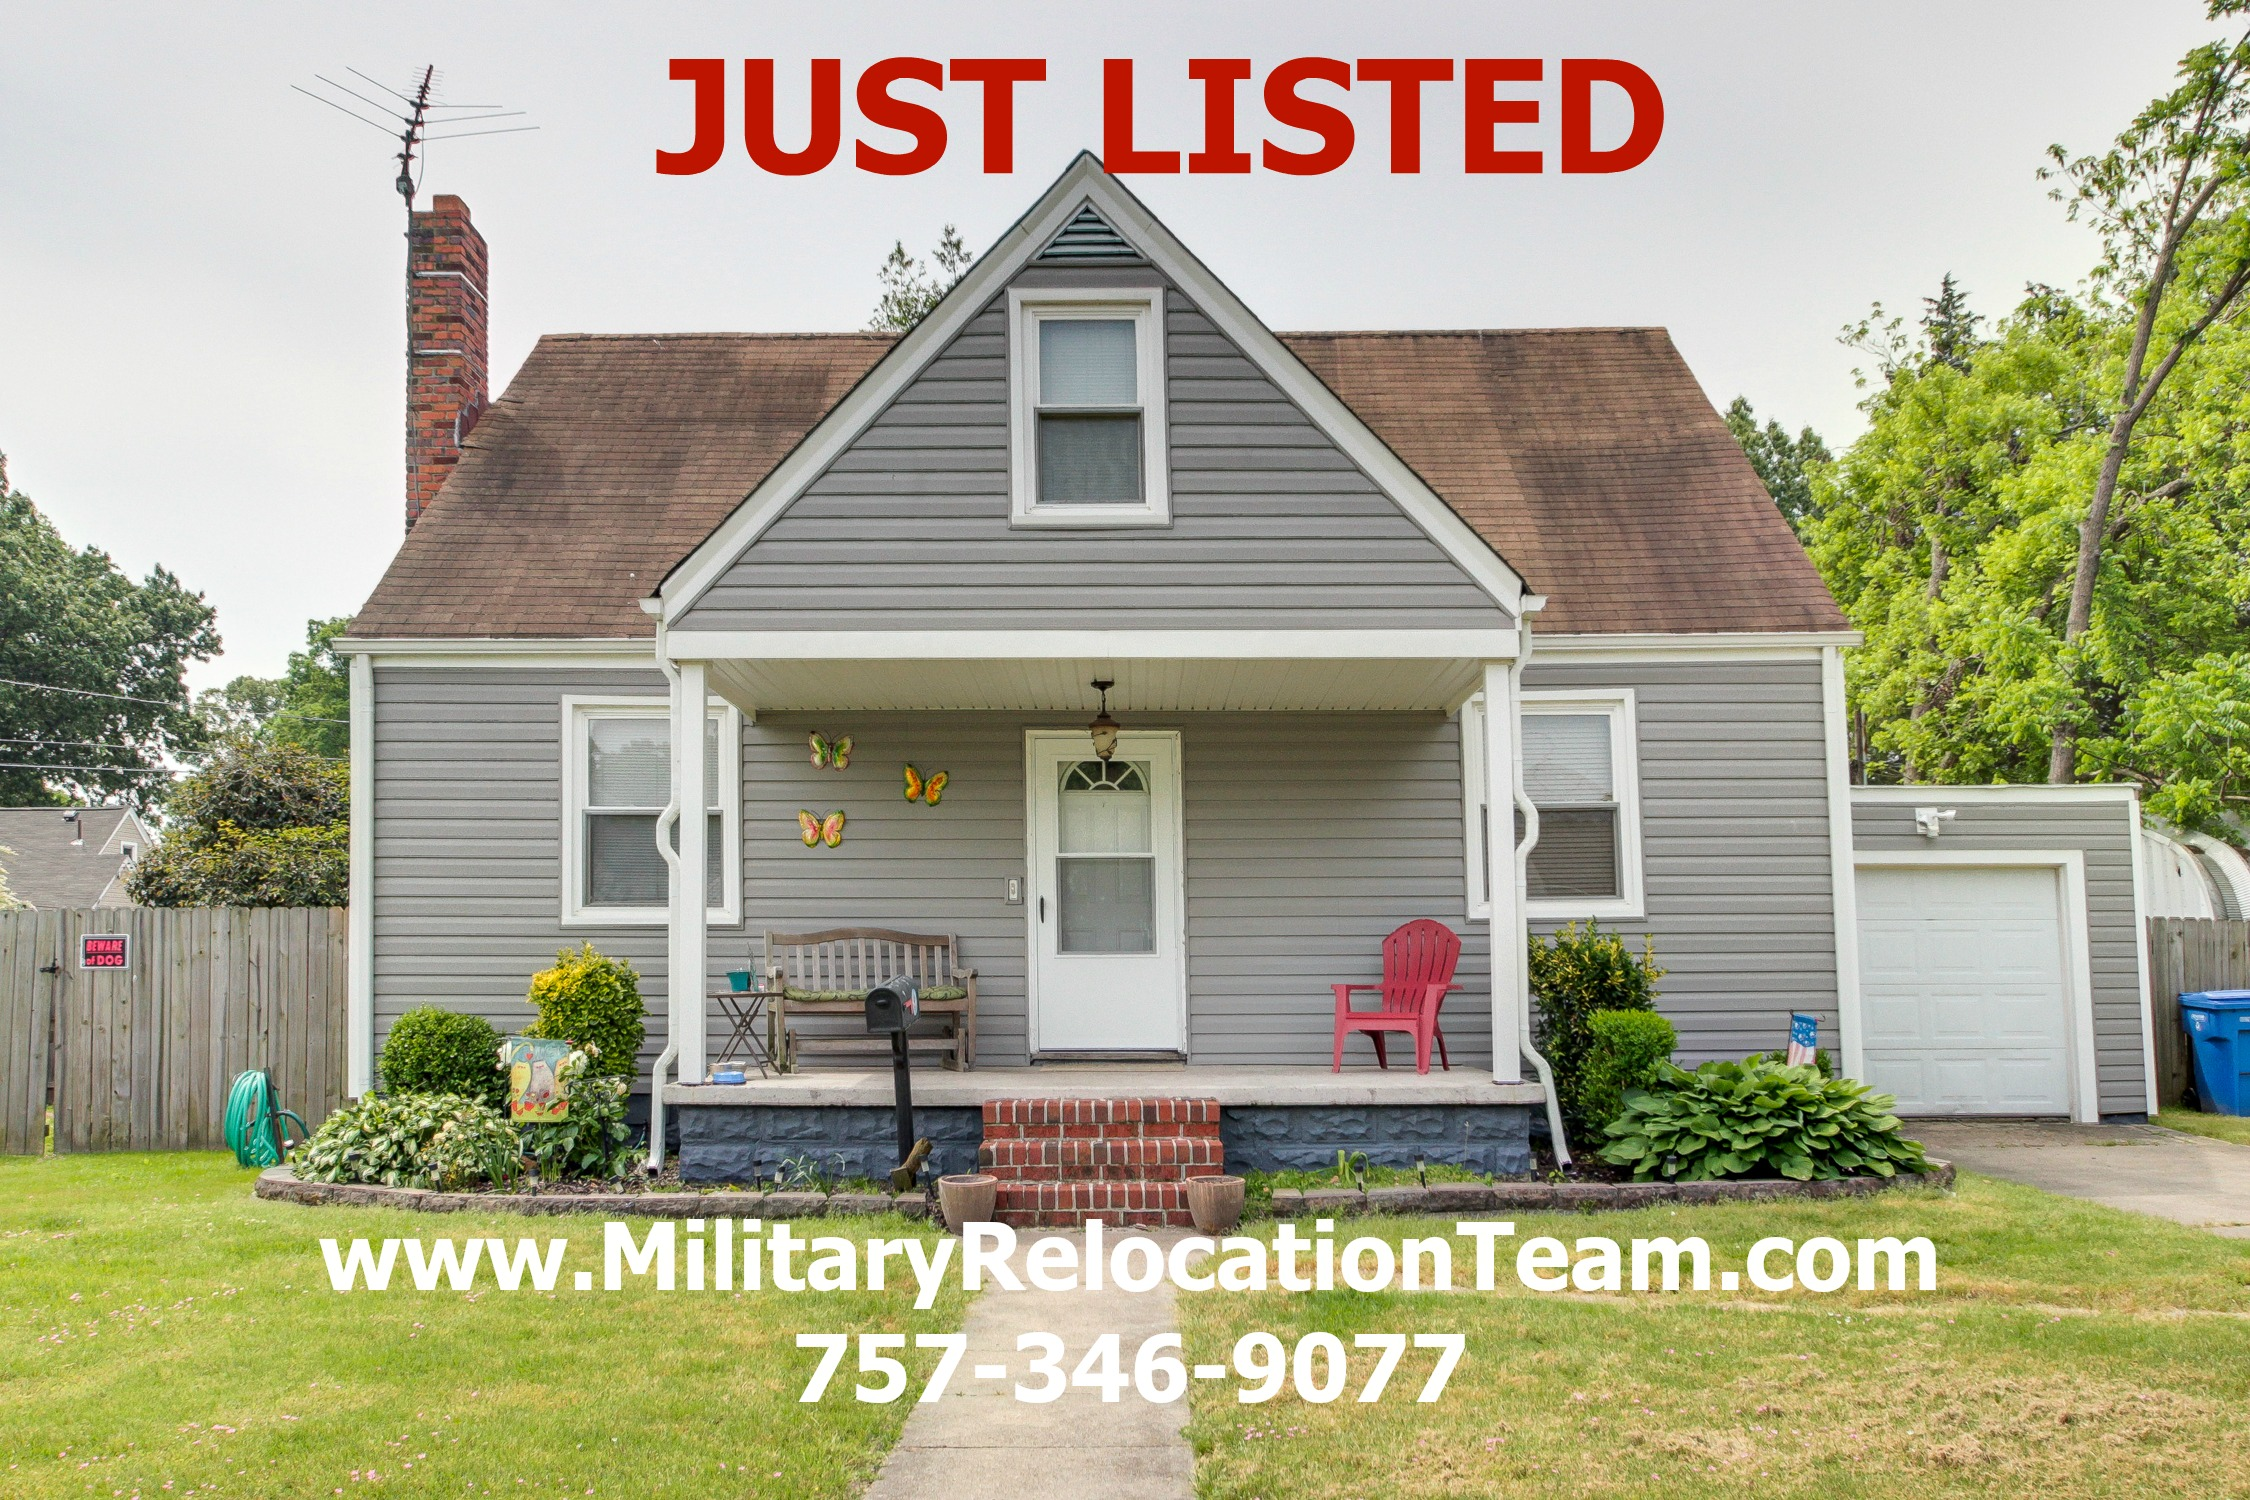 Property Management Suffolk Ave